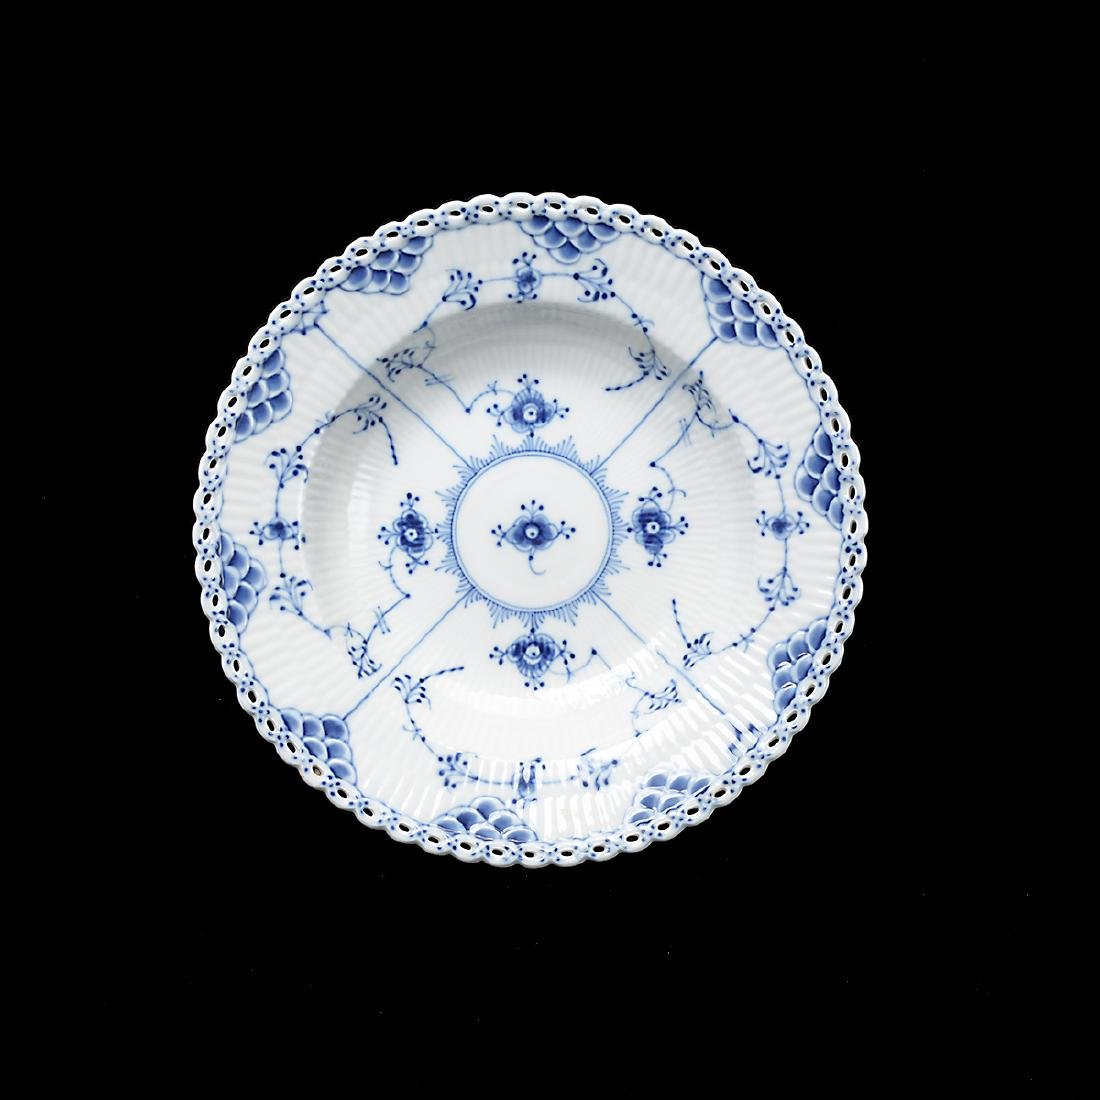 Royal Copenhagen Fluted Blue Lace China Set (31 Pieces) - 6